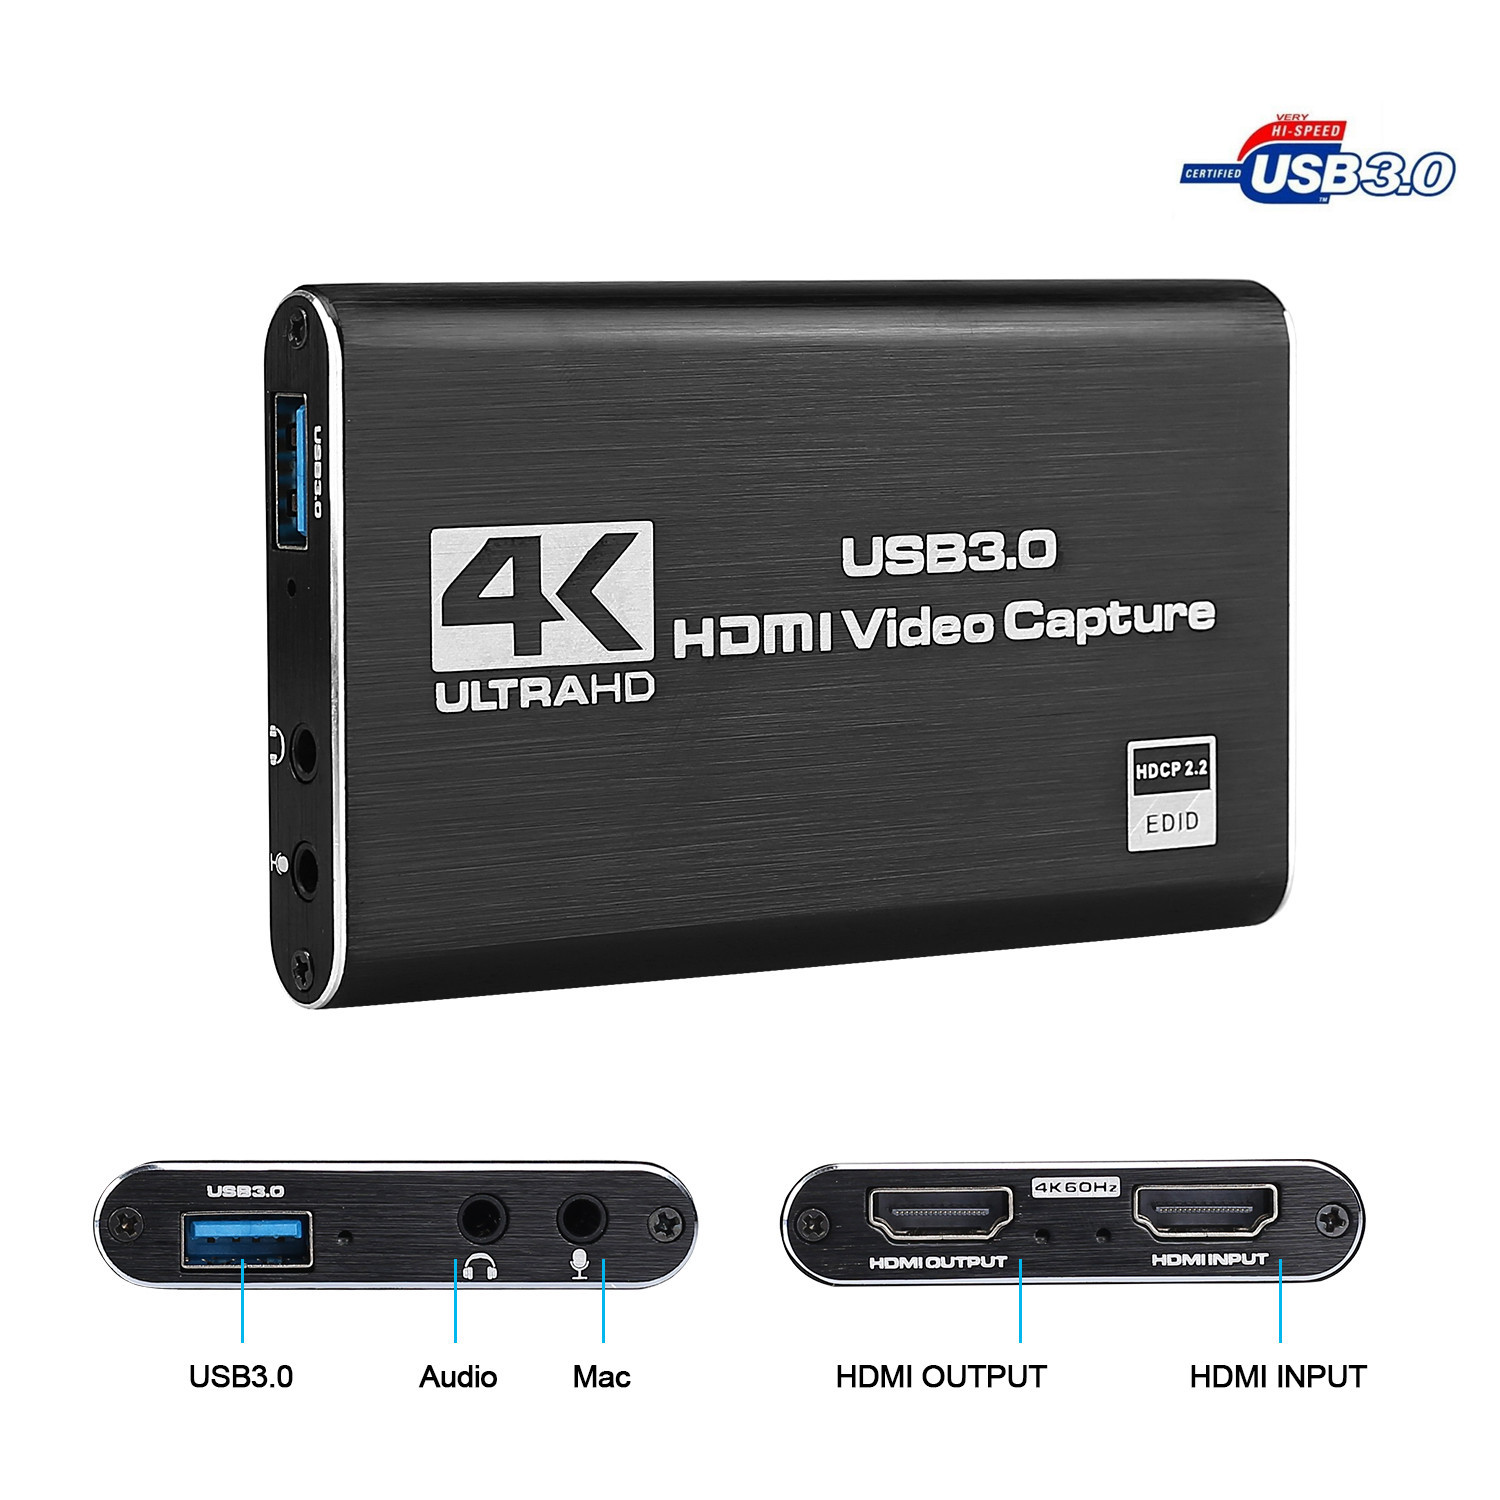 4K HDMI Game Capture Card USB3.0 1080P Reliable Portable Capture Card Device for Streaming Live Broadcasts Video Recording